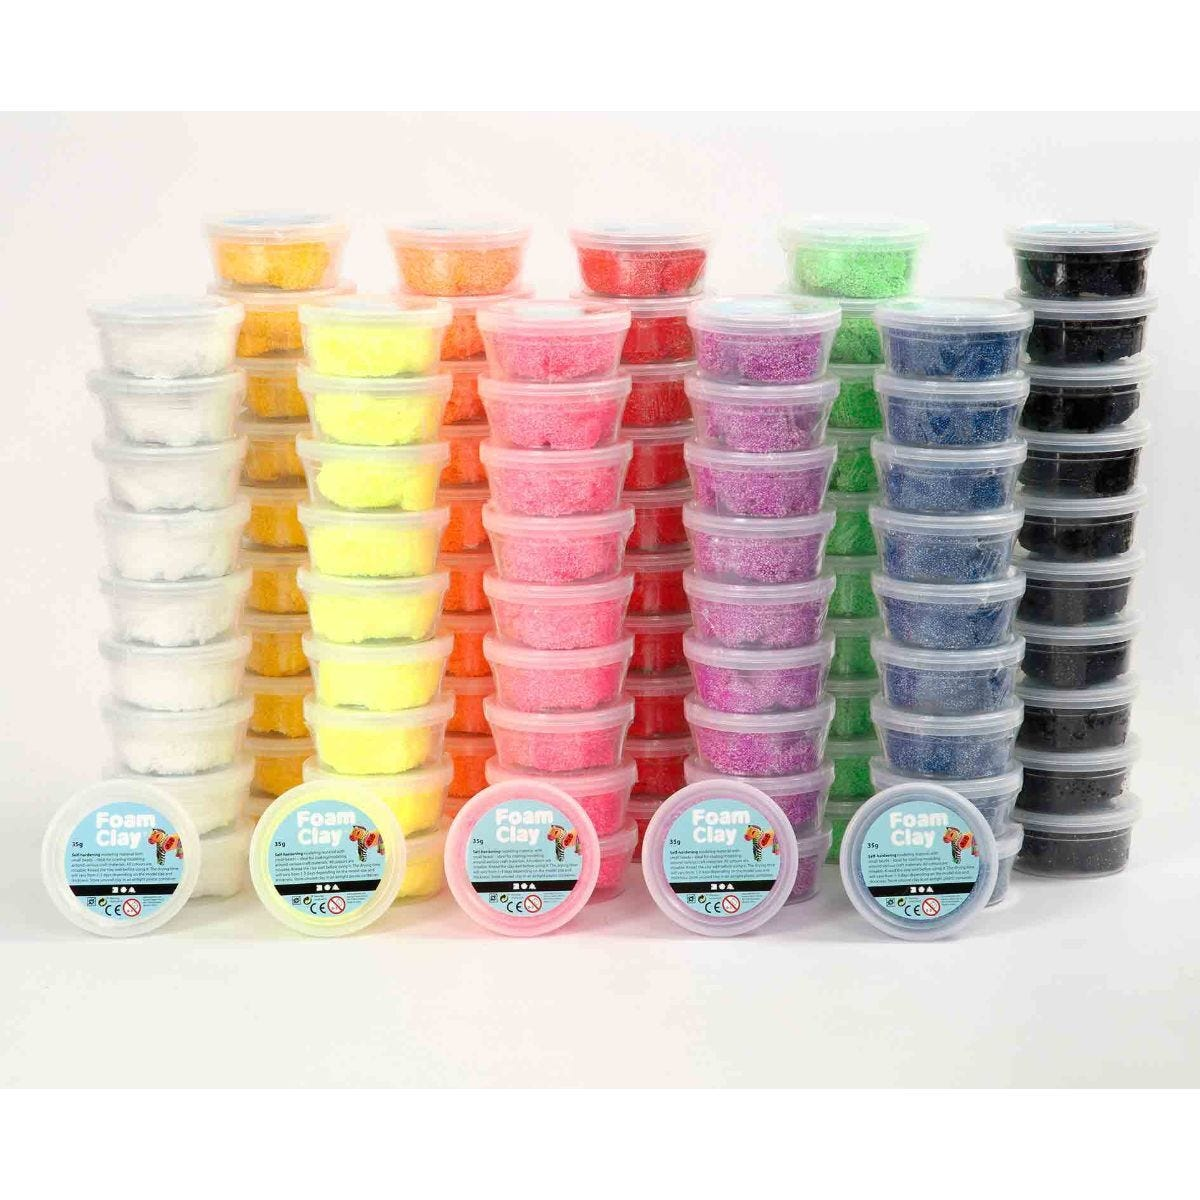 Foam Clay Pack of 100 x 35g Assorted Colours